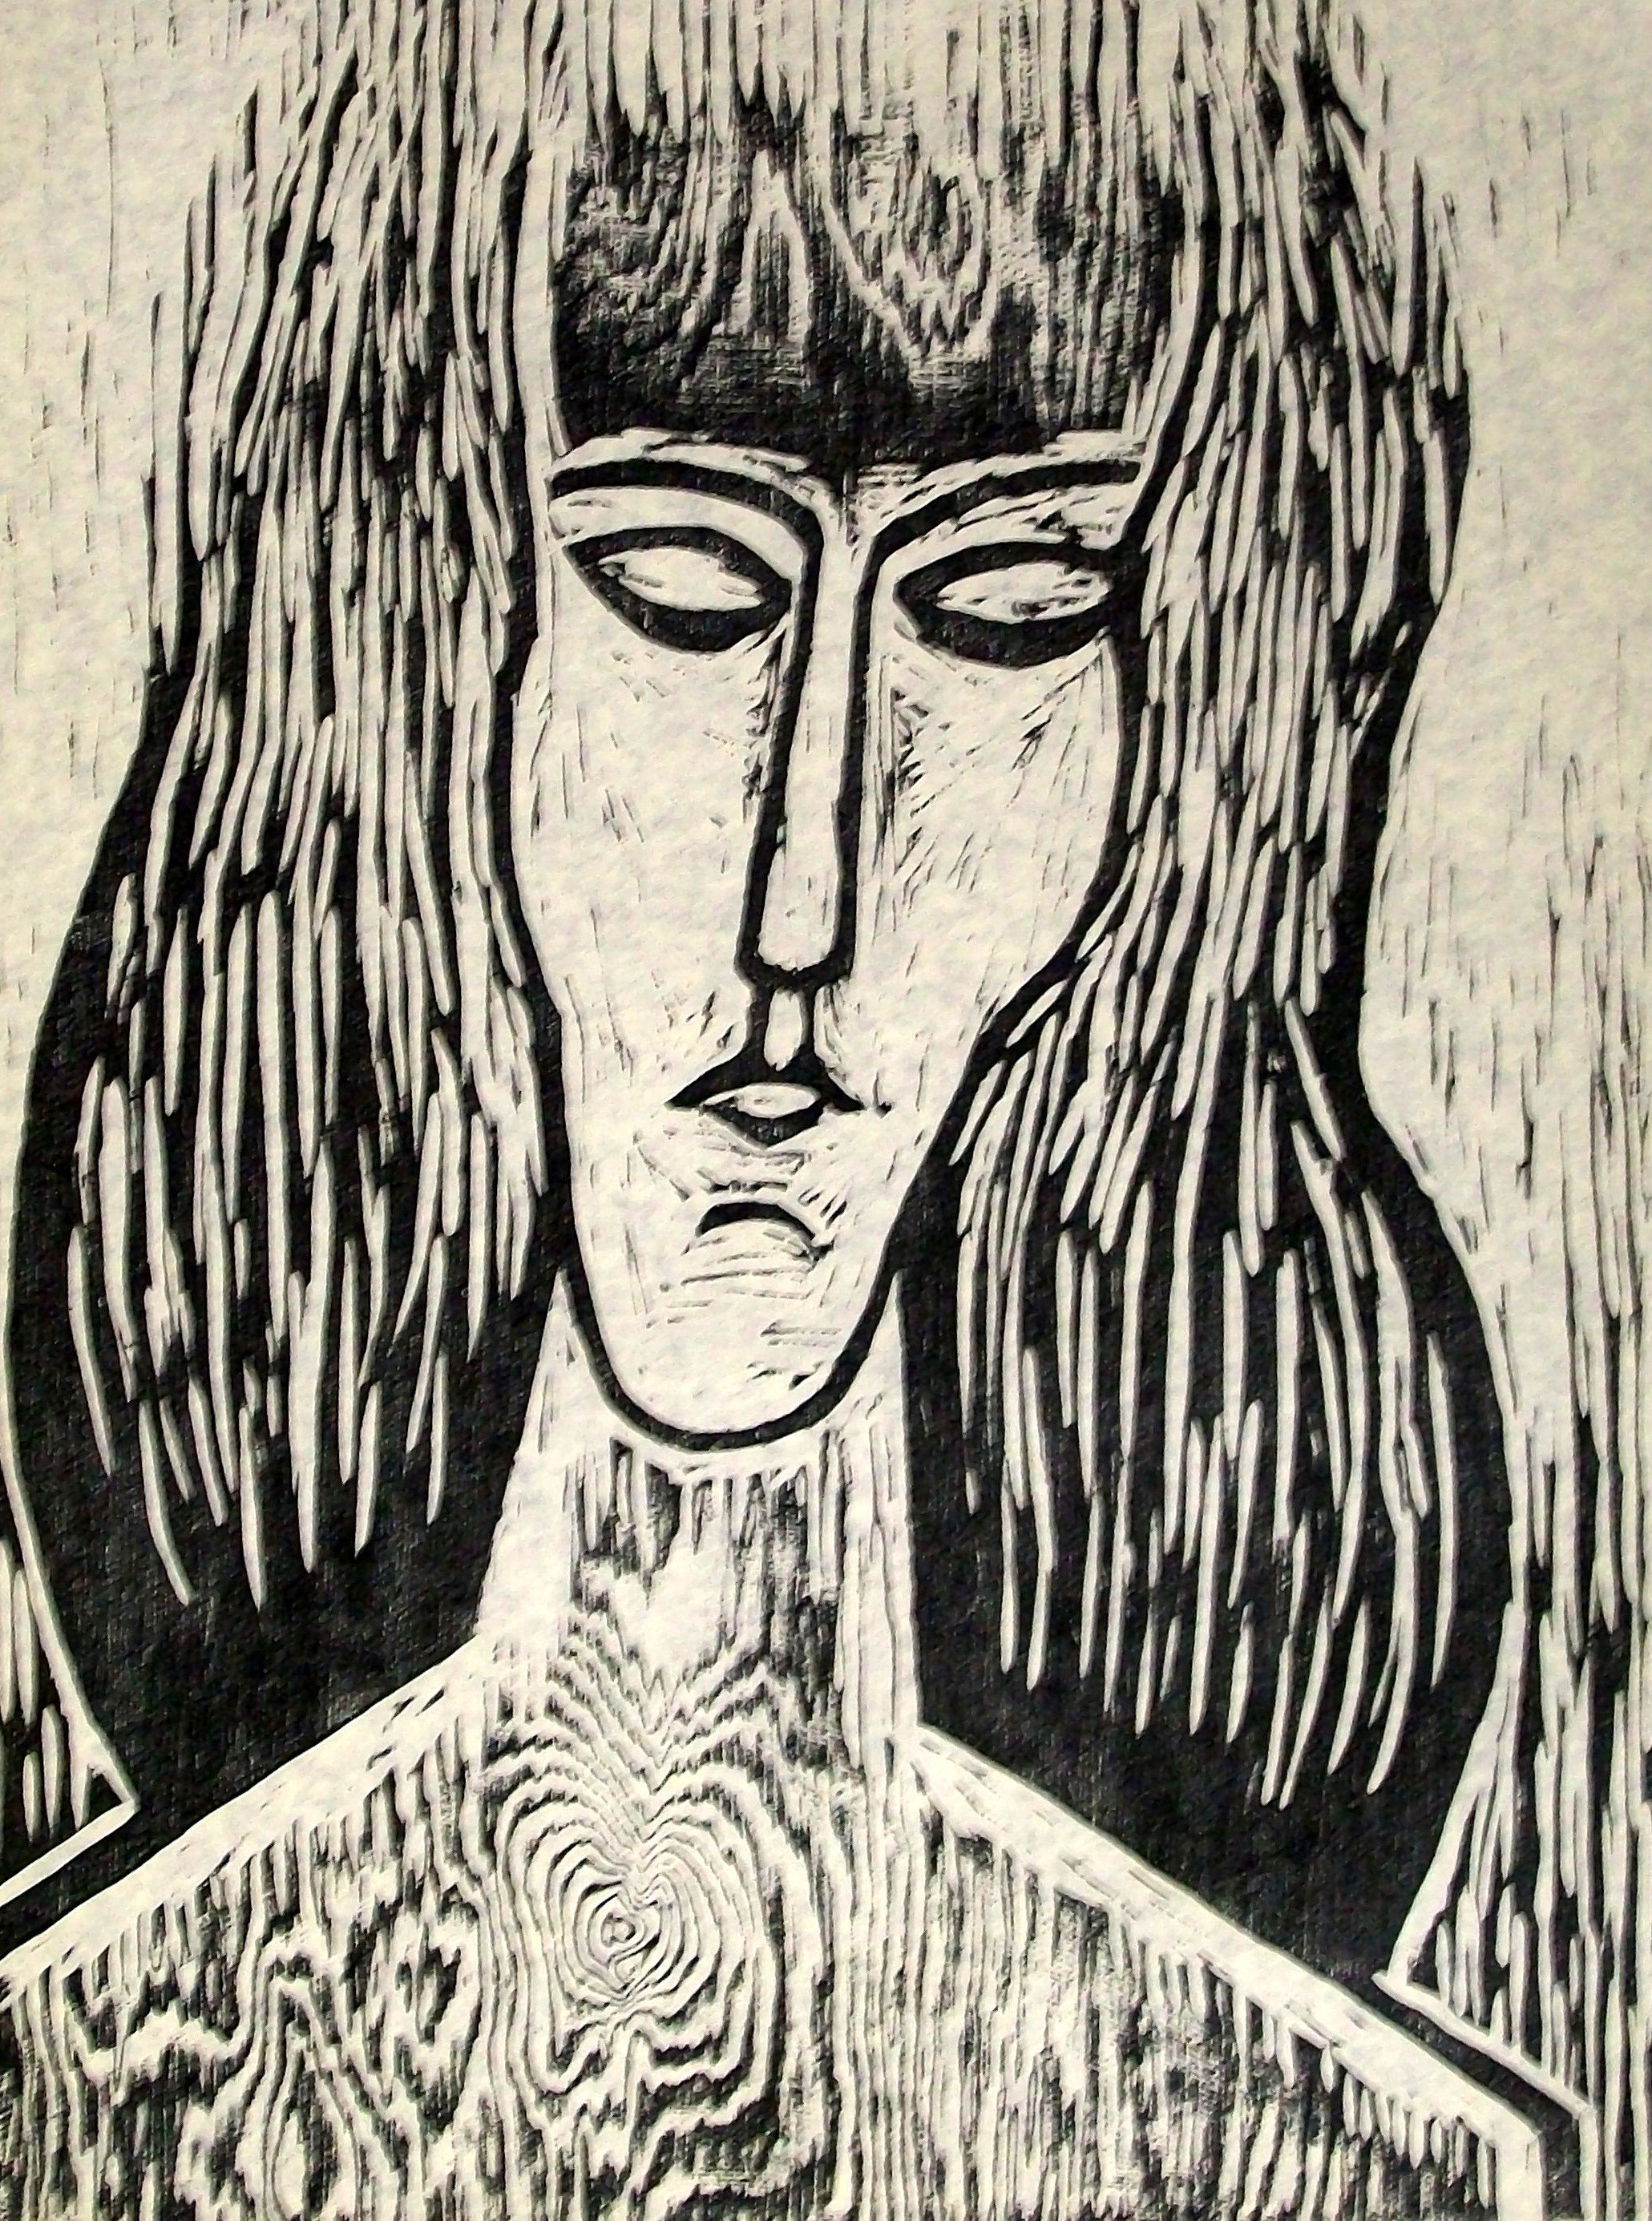 Stanley Lewis Contemplation, 1965 wood block print